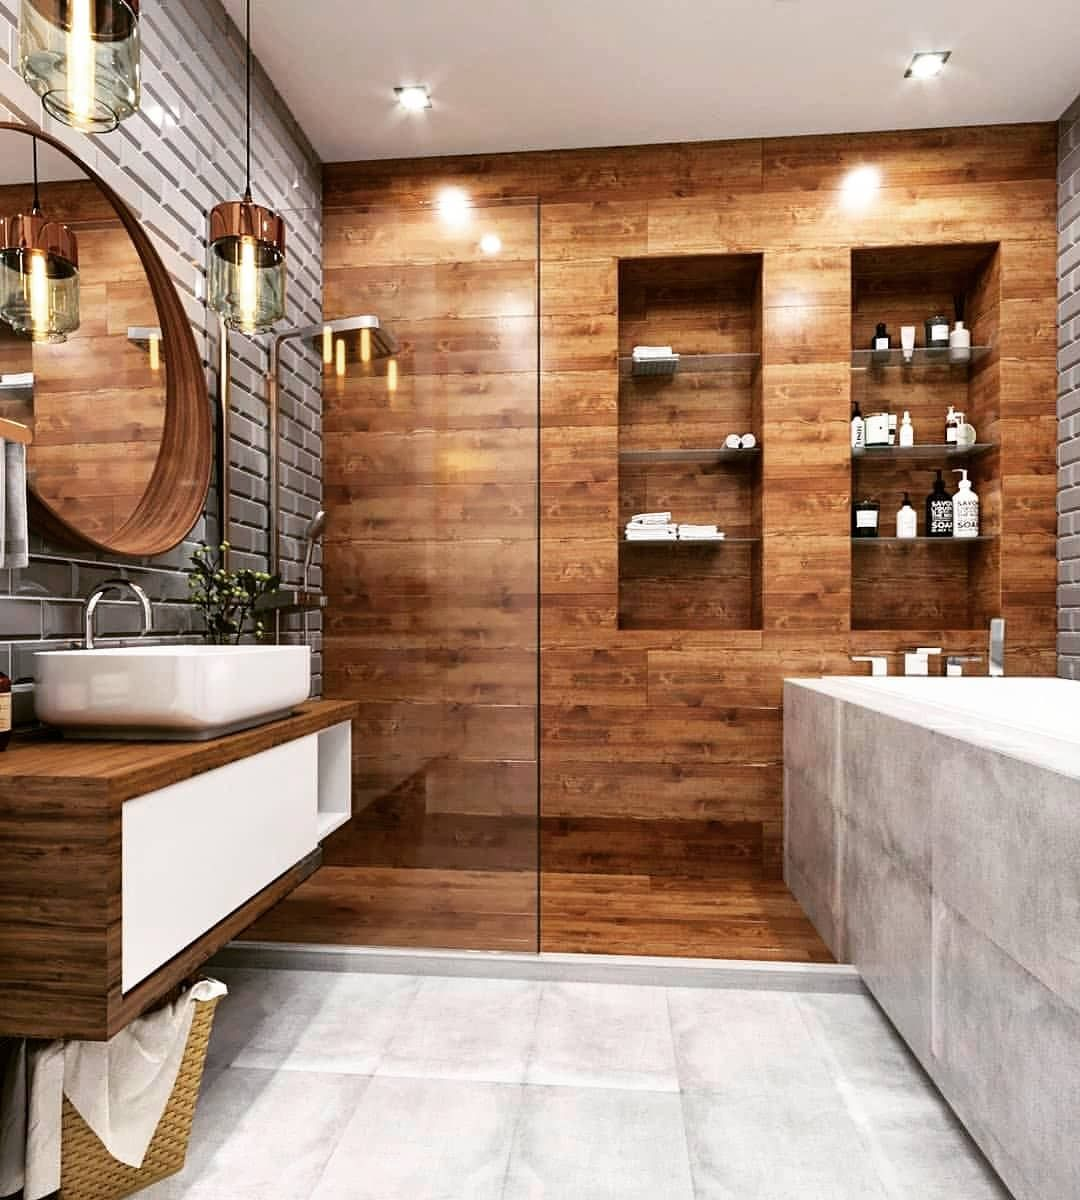 5 cool diy wall art ideas for your walls small bathroom on cool small bathroom design ideas id=21432